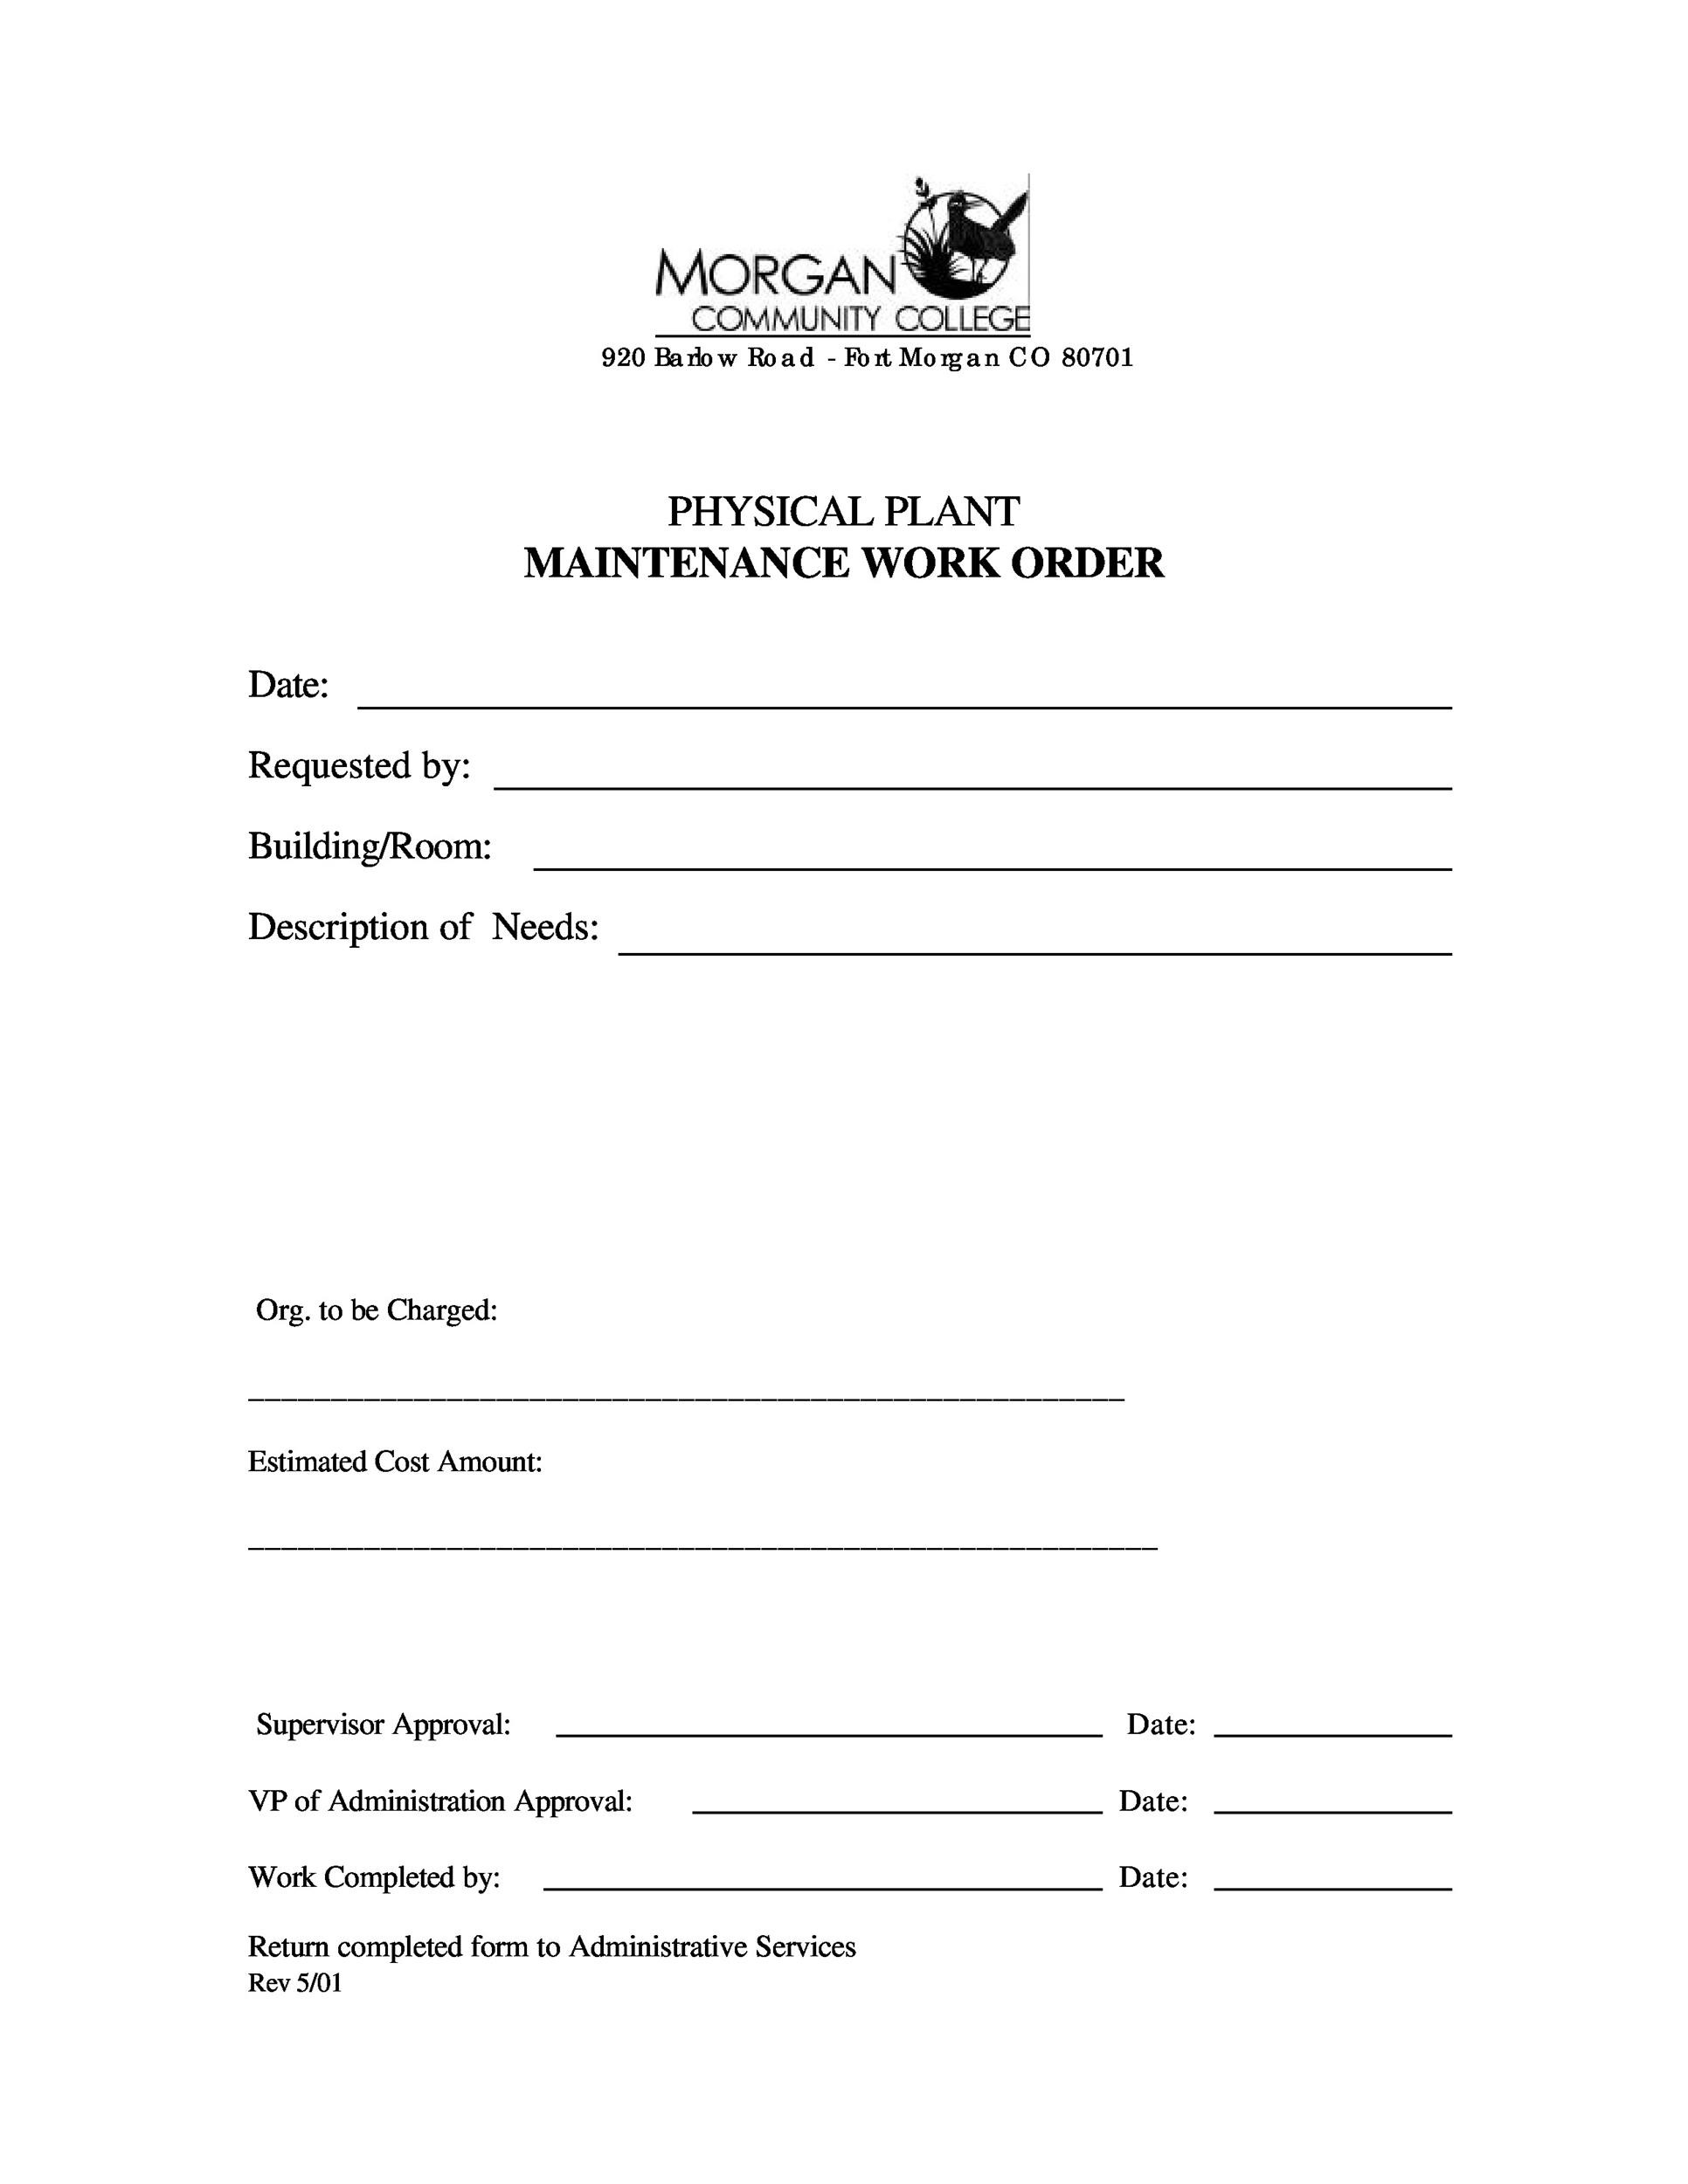 40 Order Form Templates work order change order MORE – Service Order Form Template